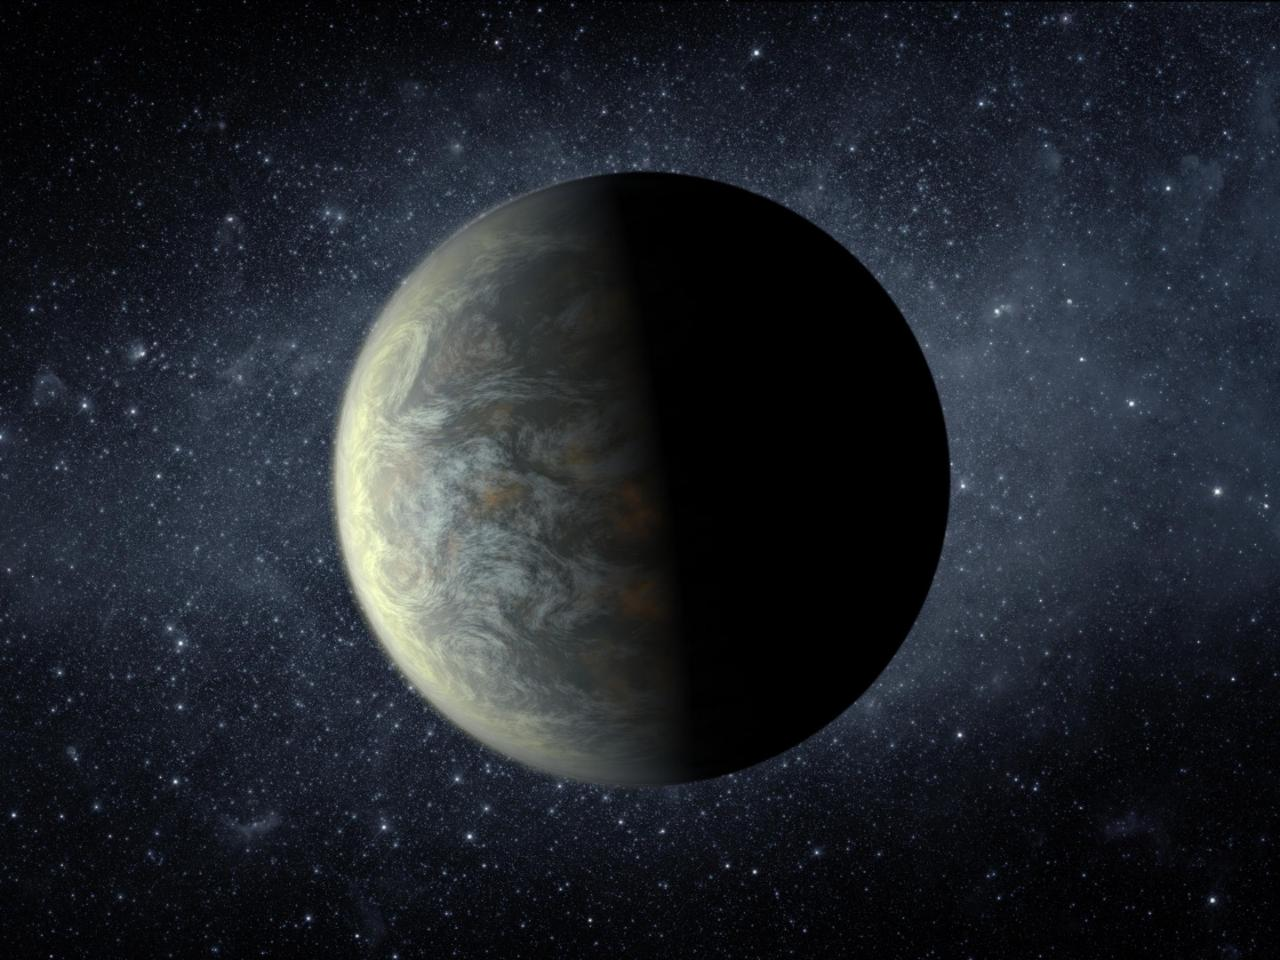 An artist's impression of an Earth-sized exoplanet